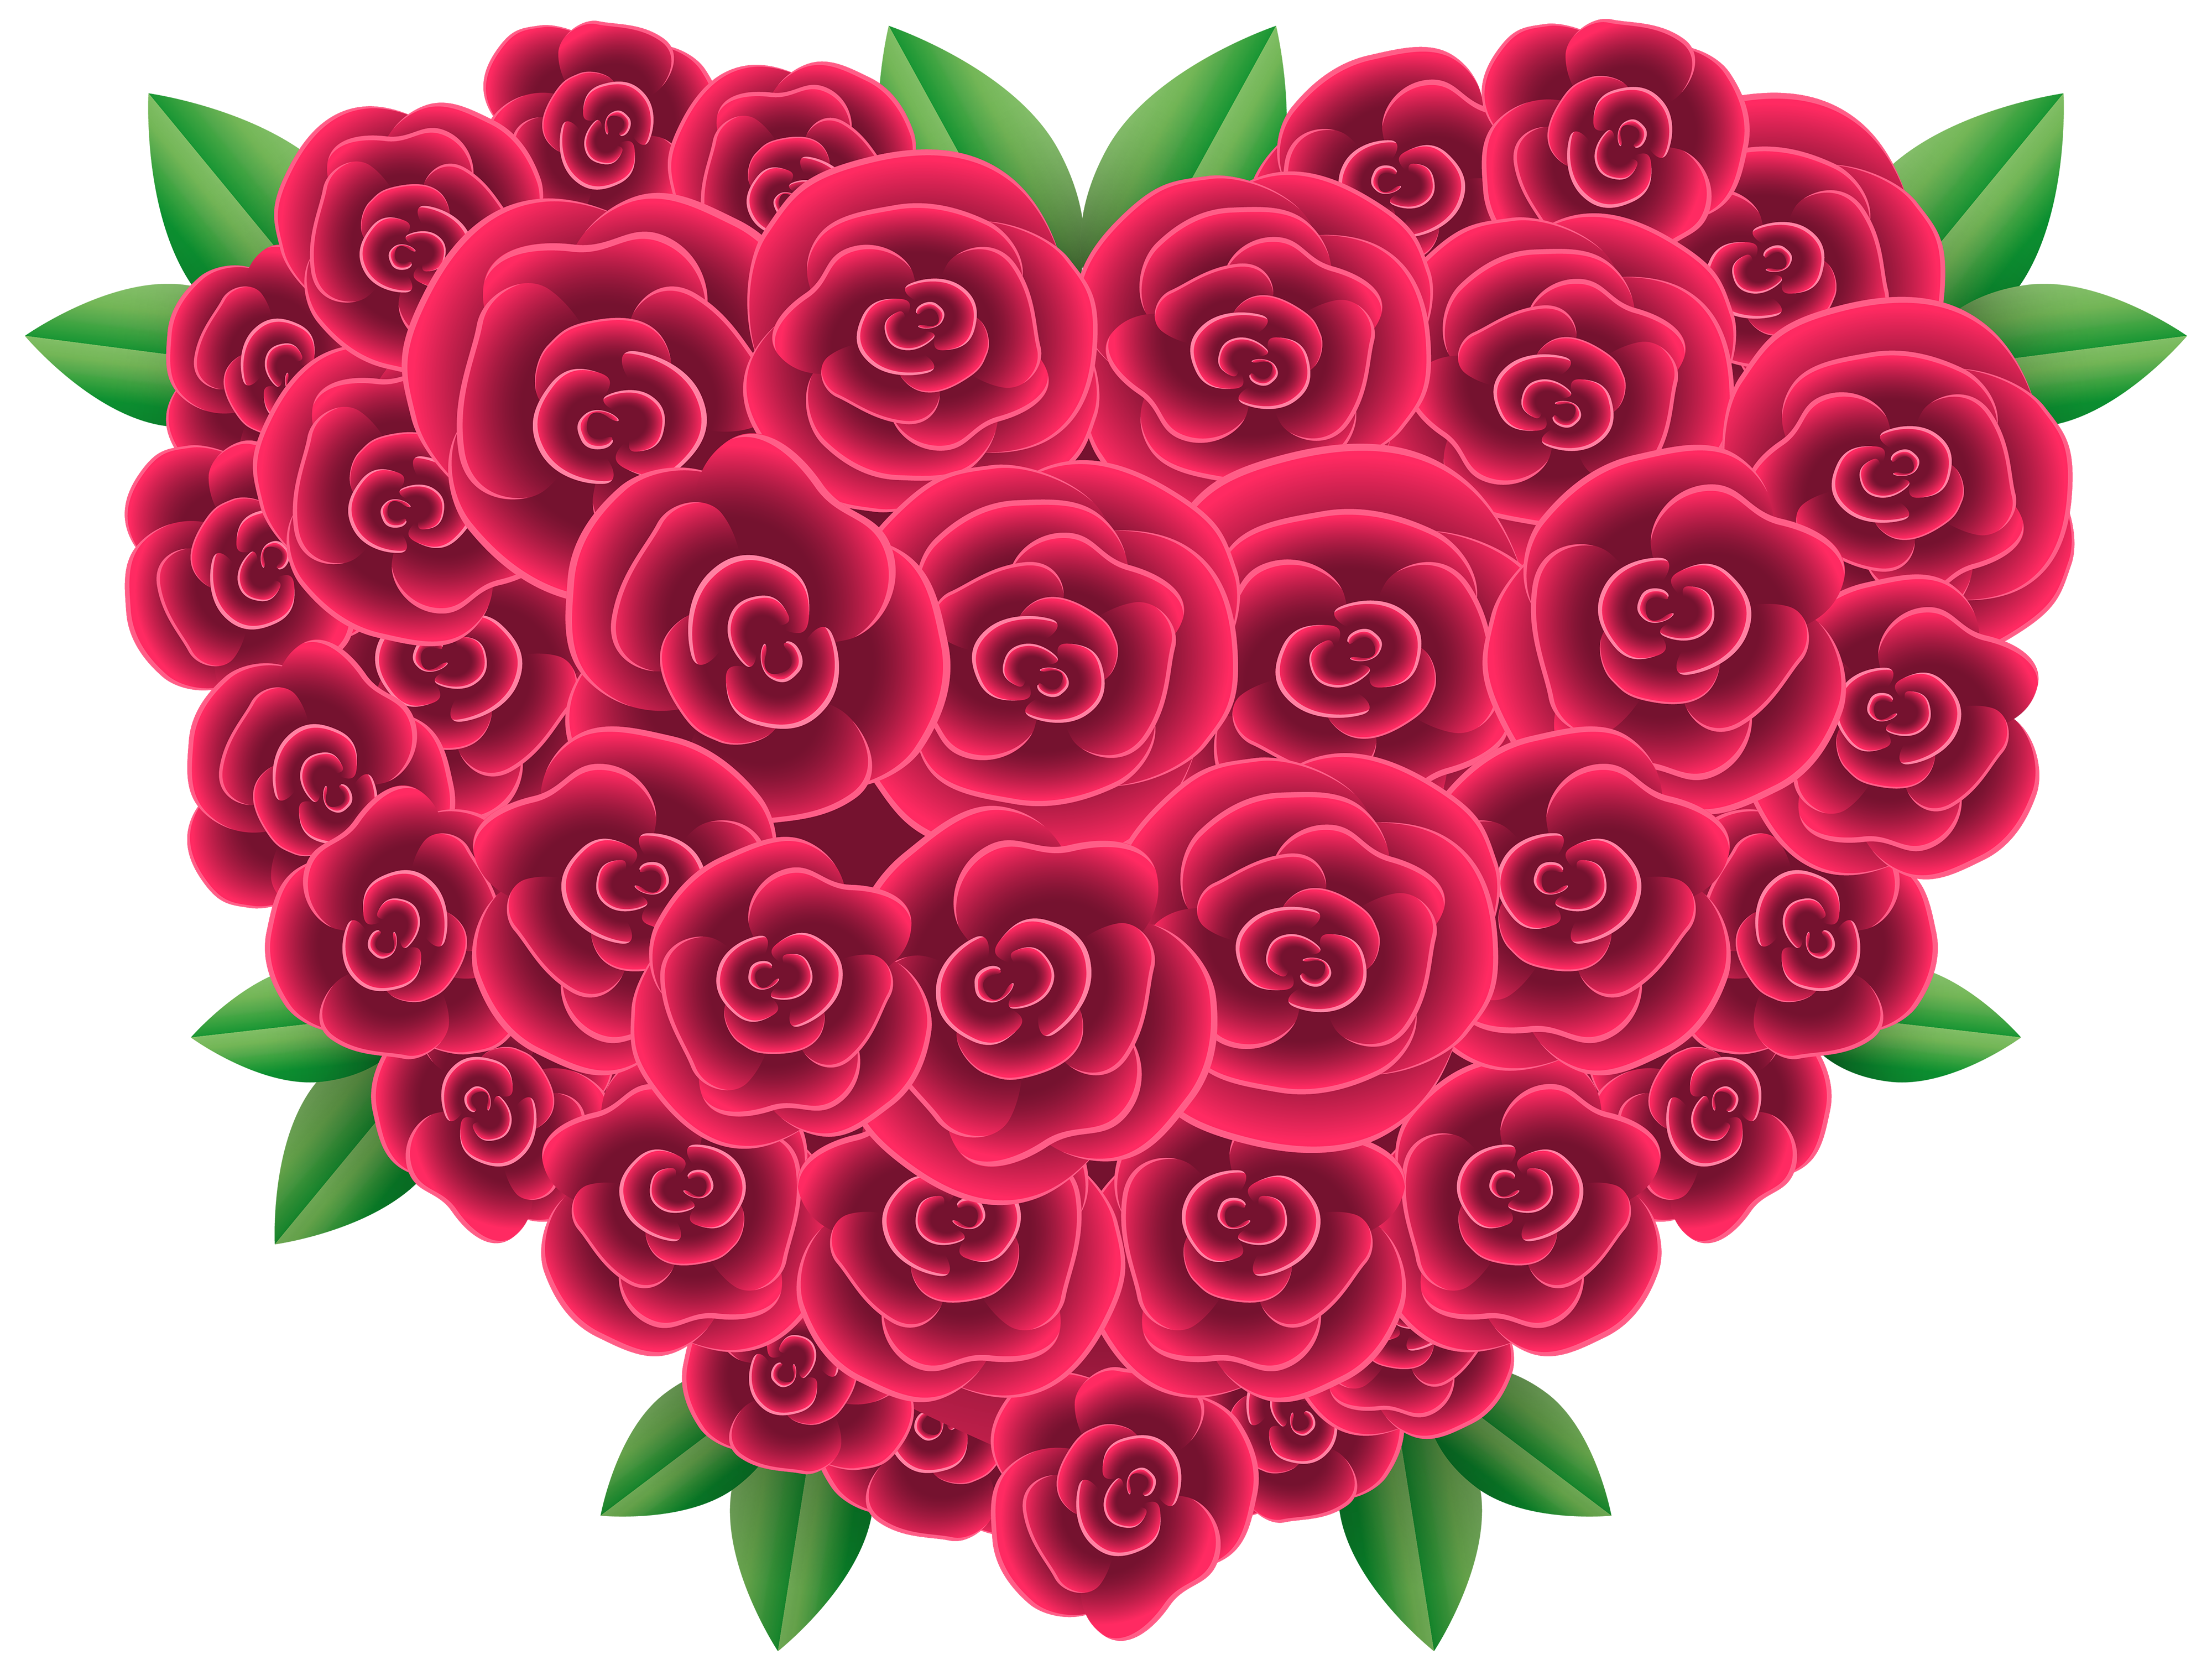 Floral heart png best. Hearts clipart plant